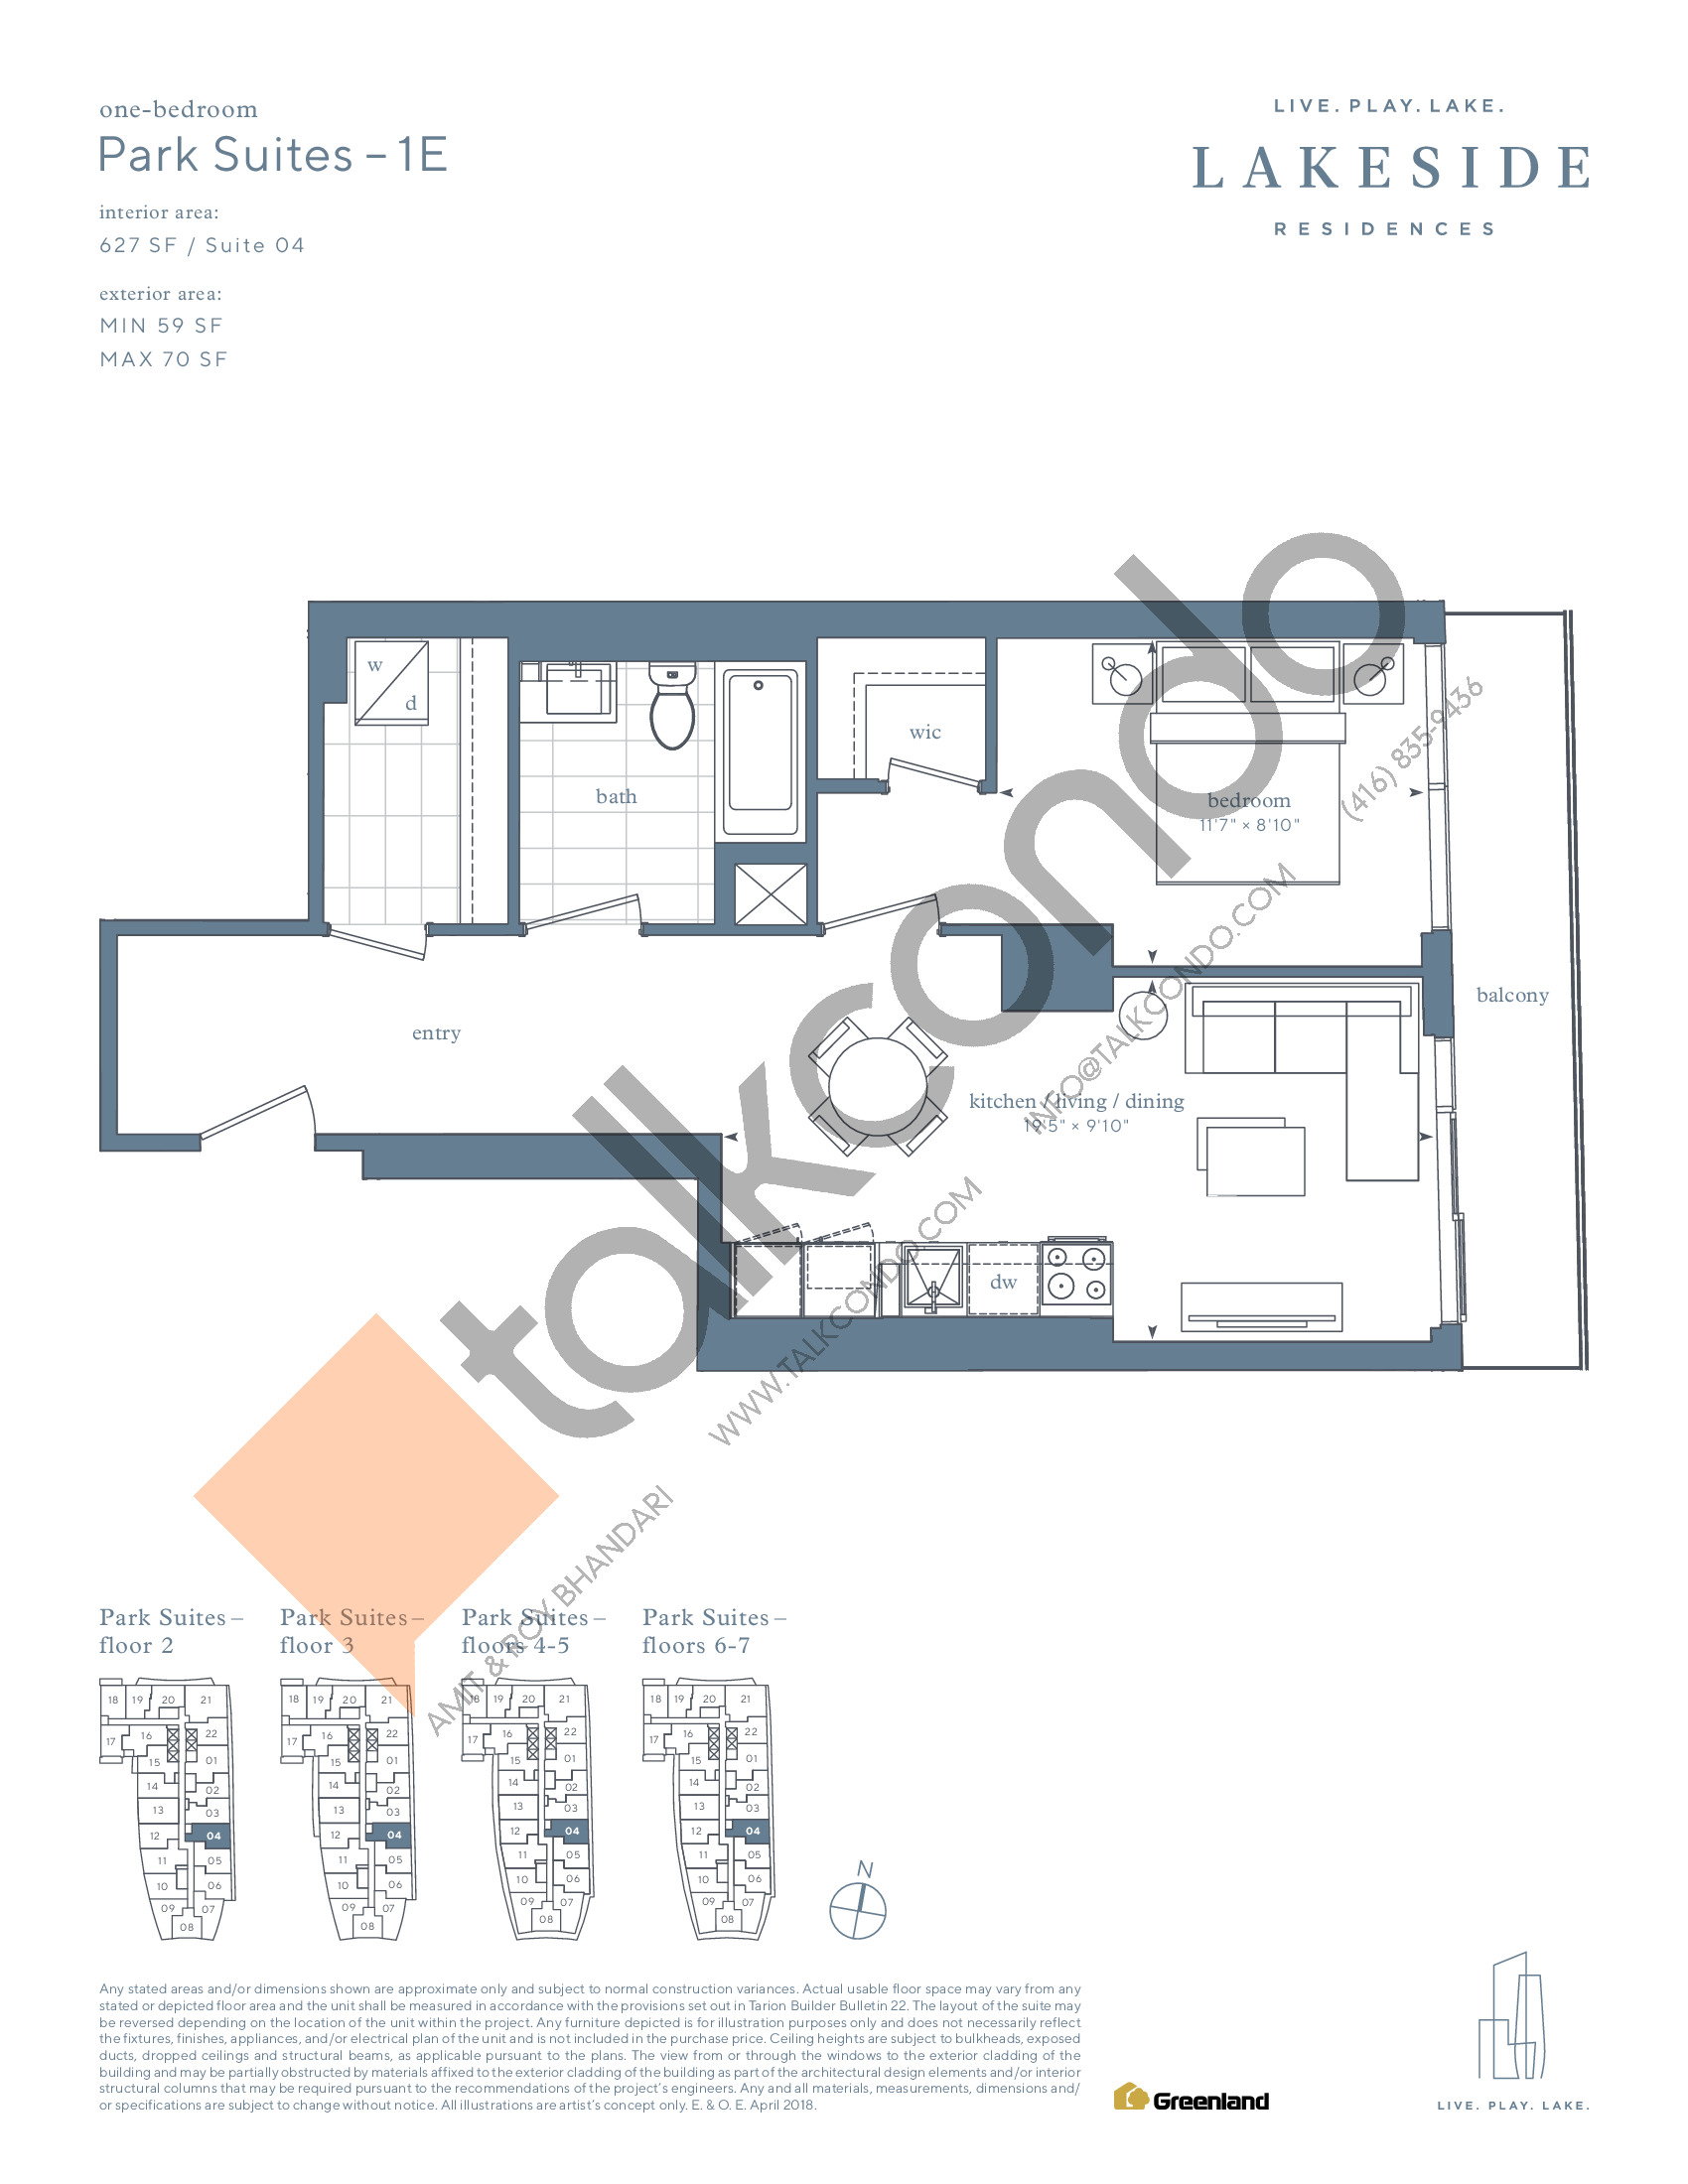 Park Suites - 1E Floor Plan at Lakeside Residences - 627 sq.ft